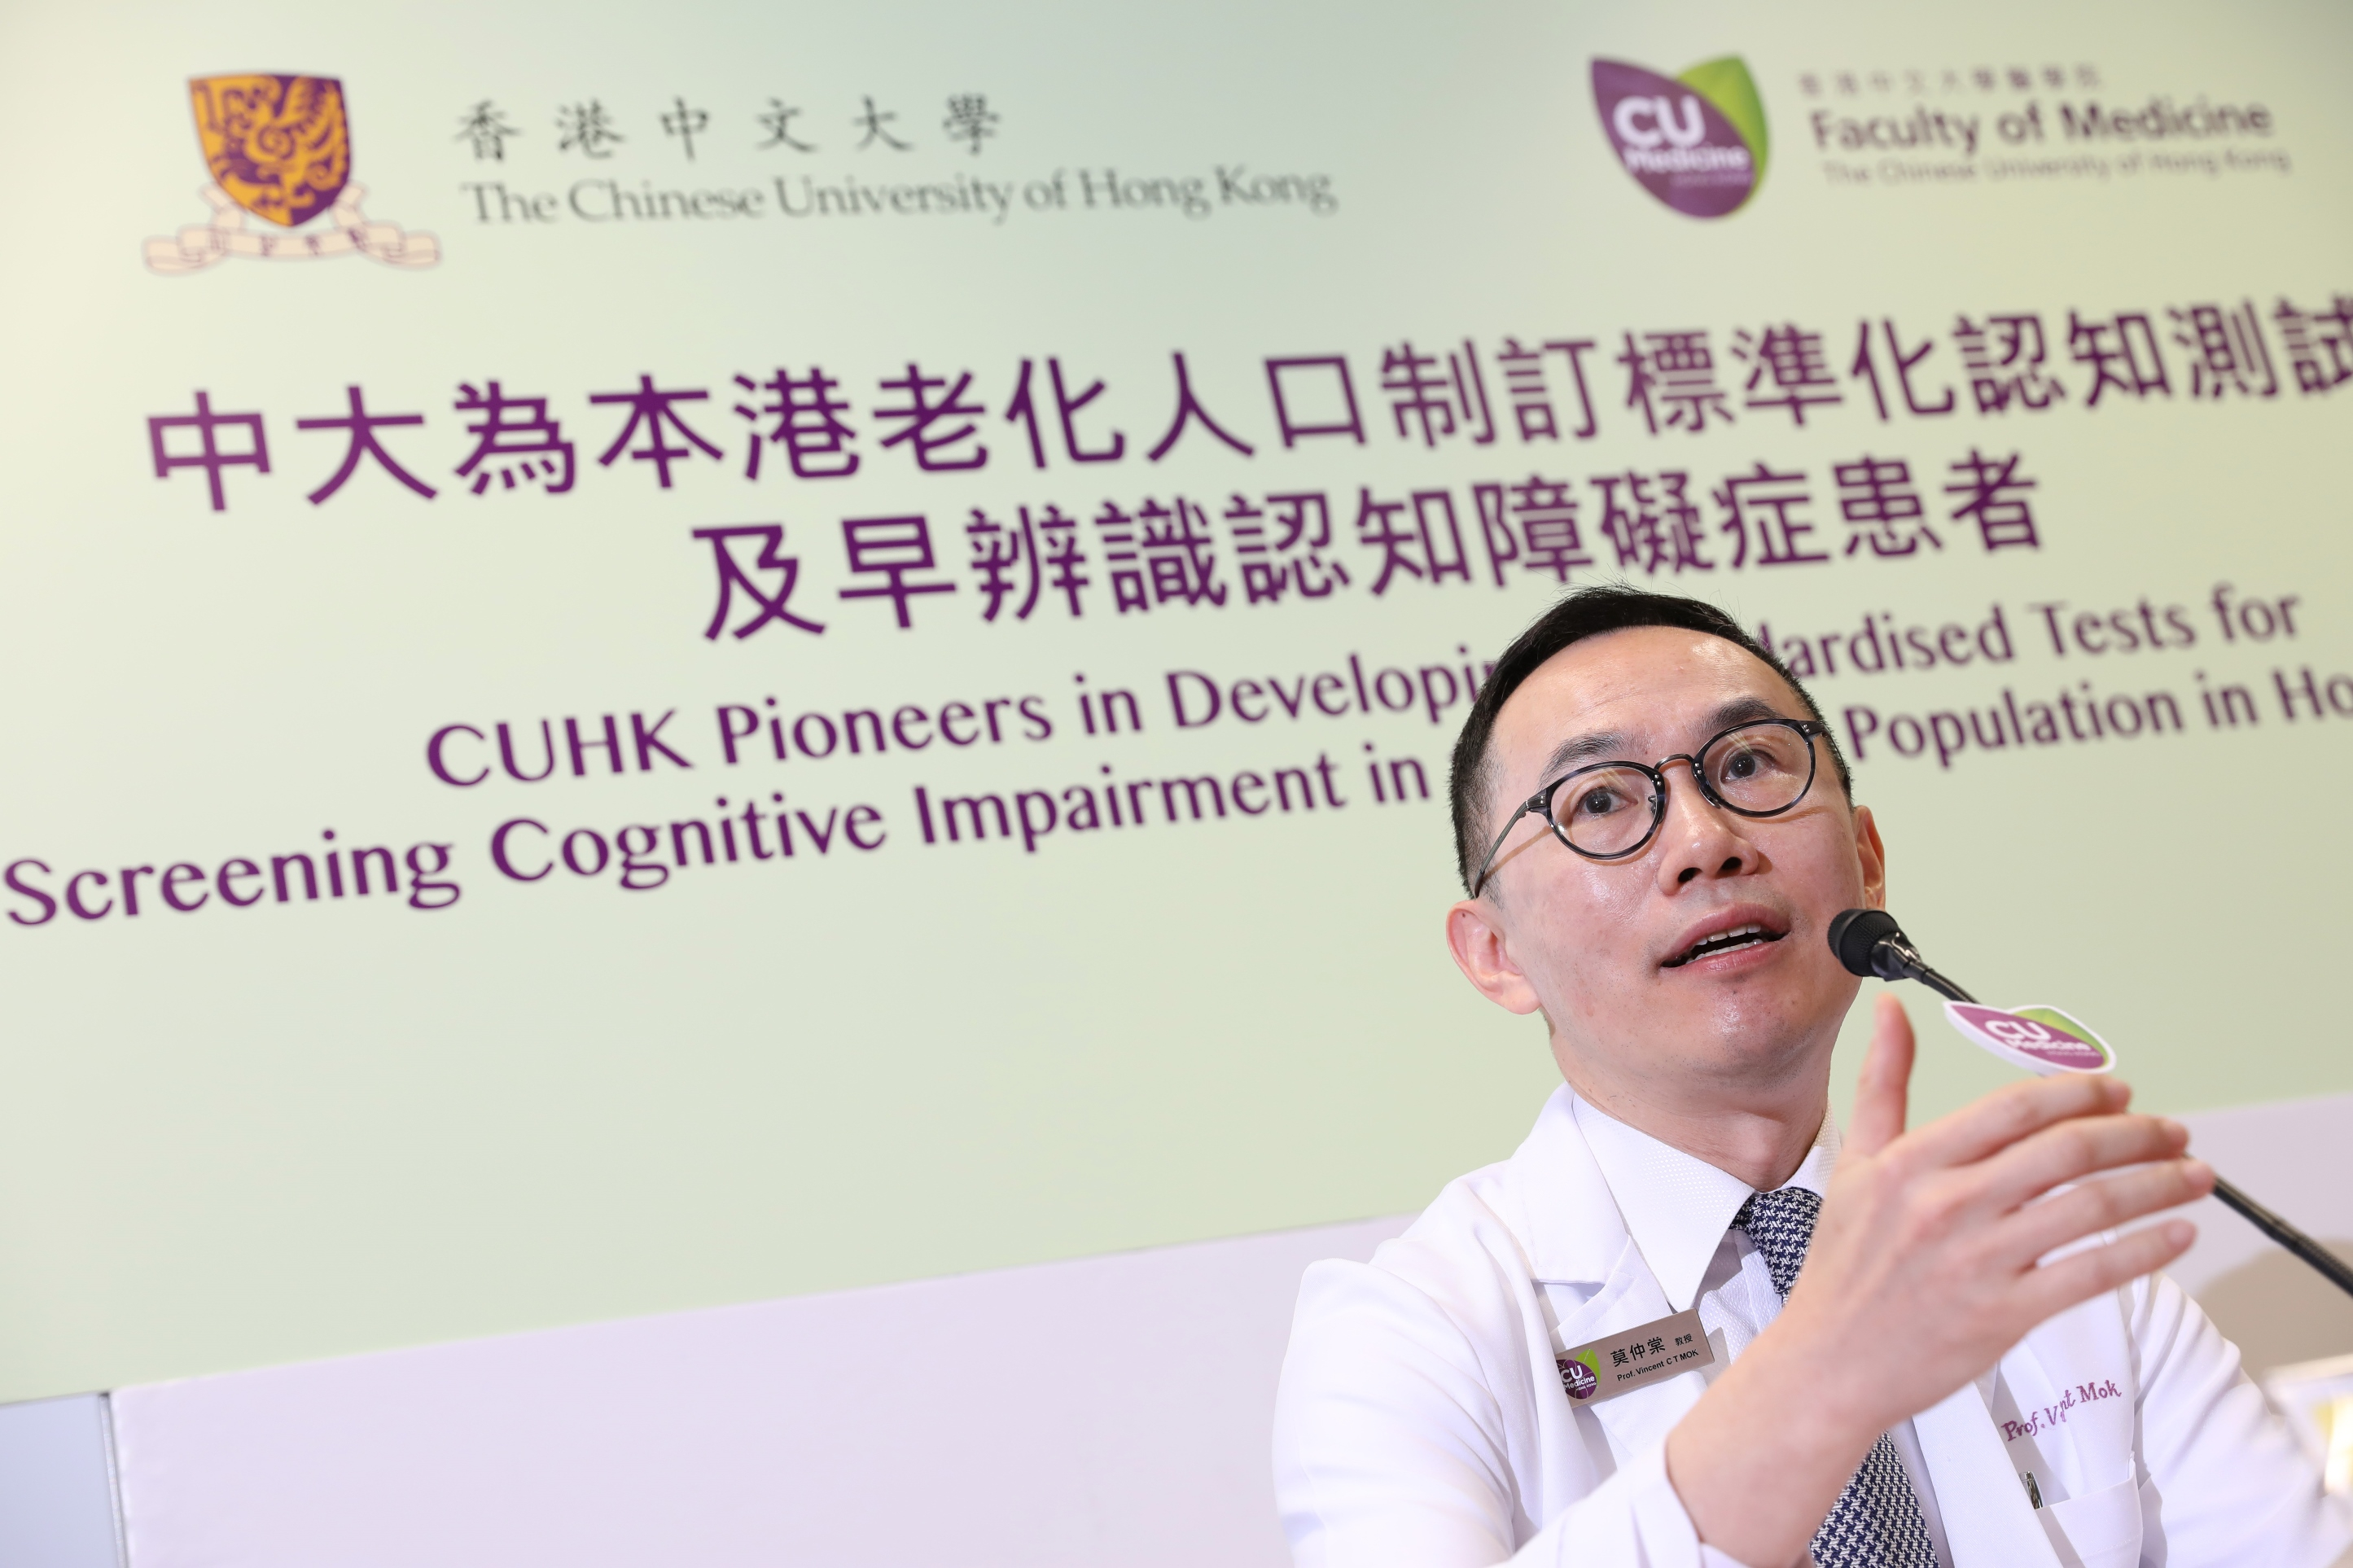 Prof. Vincent Chung Tong MOK says the two sets of tools are now widely used by healthcare and social welfare professionals in the territory. Their team has provided training to over 4,500 social and healthcare professionals from different hospitals and NGOs all over Hong Kong.